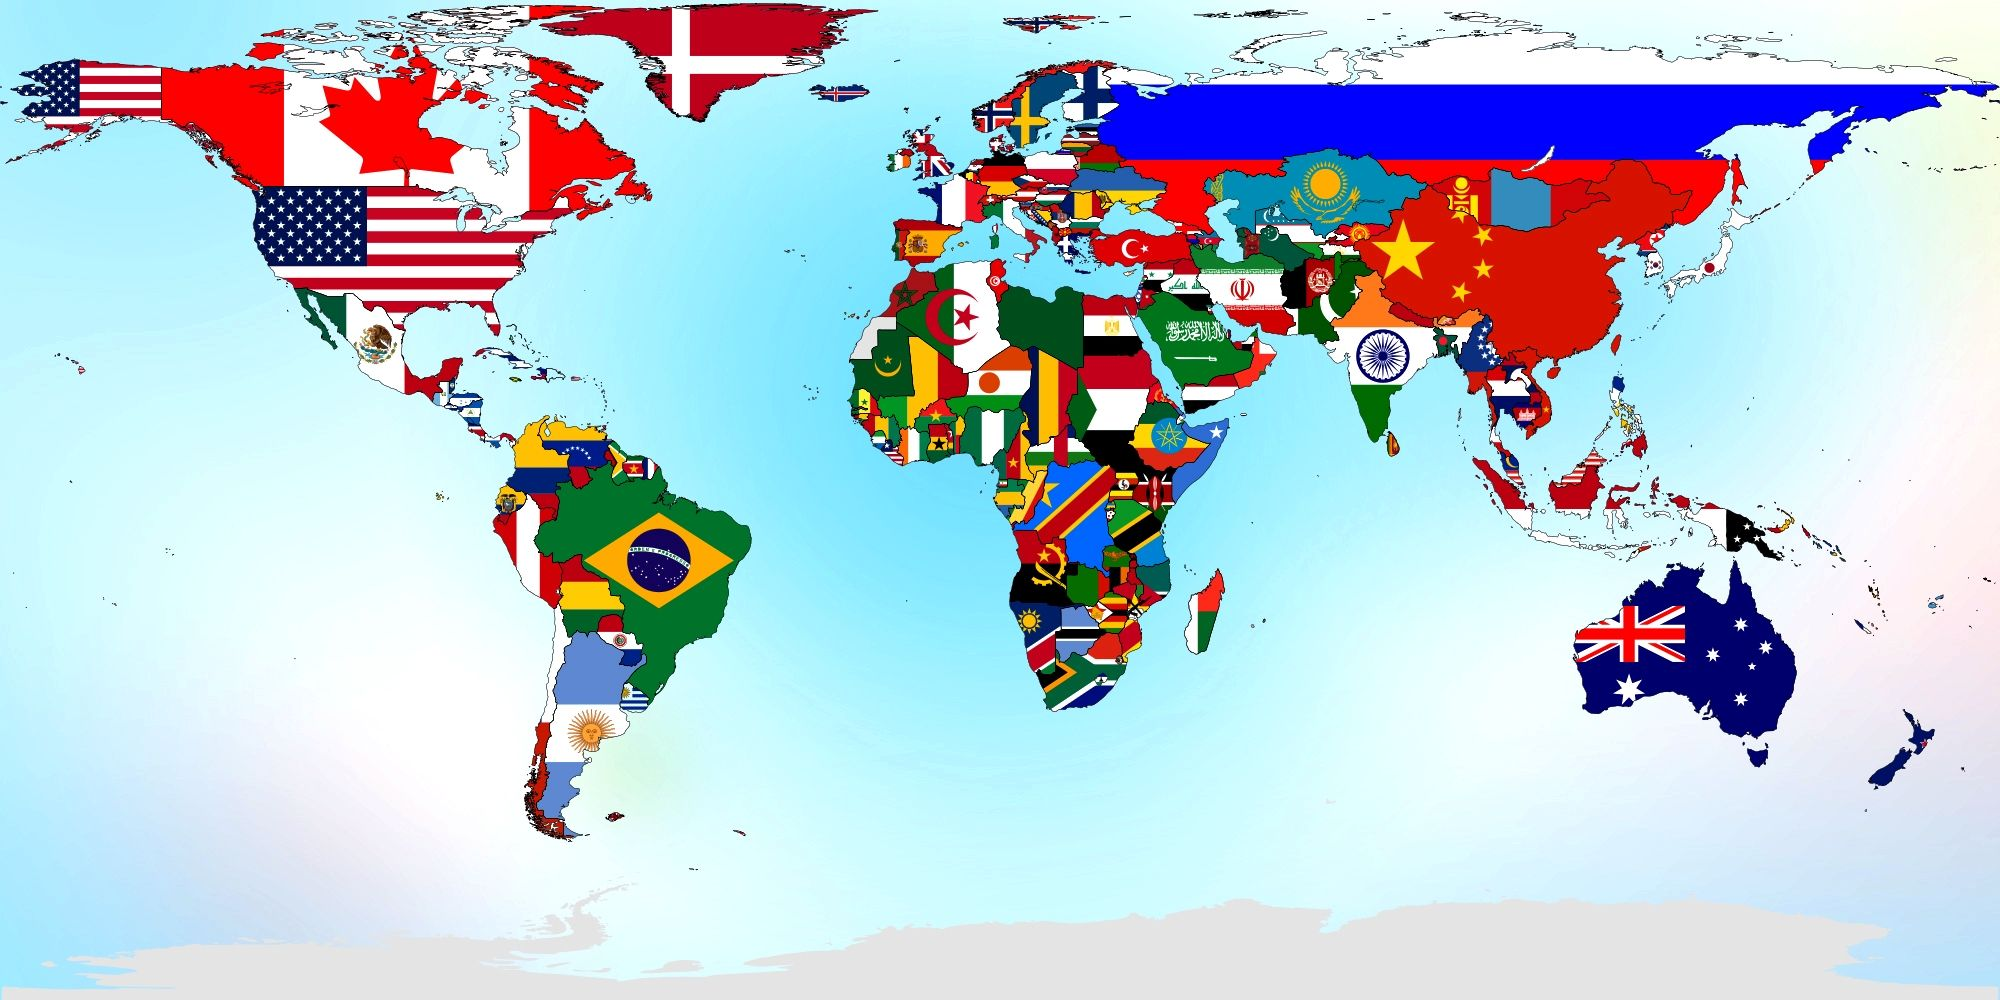 World map wallpaper with flags photos world map wallpaper for anyone world map wallpaper with flags photos world map wallpaper for anyone who loves geography gumiabroncs Choice Image